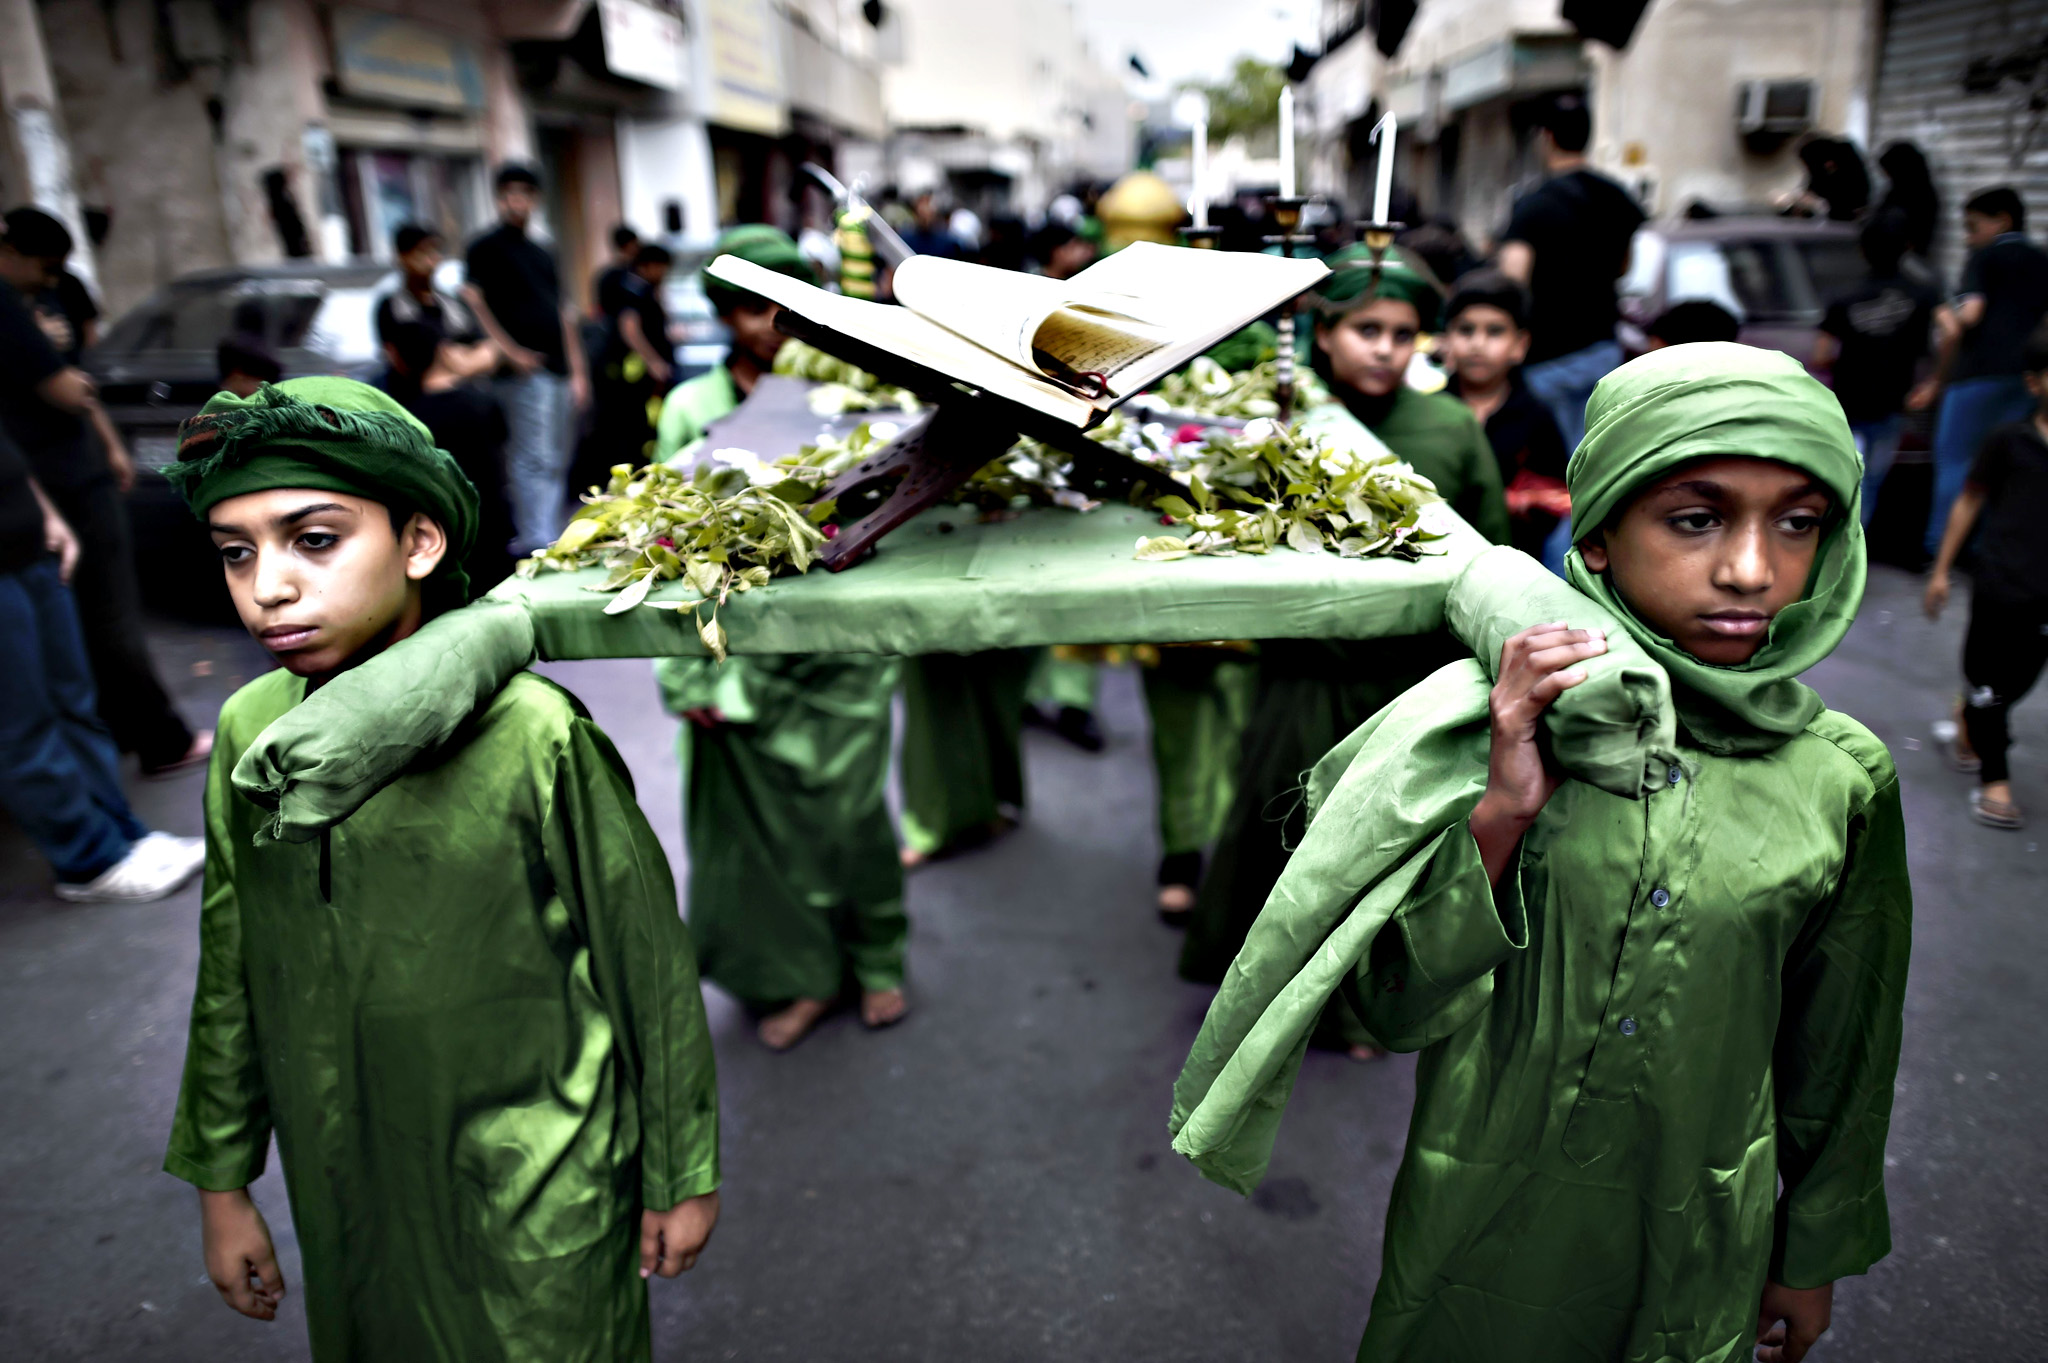 Bahraini Shia Muslims take part in a ceremony commemorating Ashura, which marks the seventh century slaying of Imam Hussein, the grandson of Prophet Mohammed and one of Shia Islam's most revered figures, in the village of Sanabis, west of Manama, on October 22, 2015.